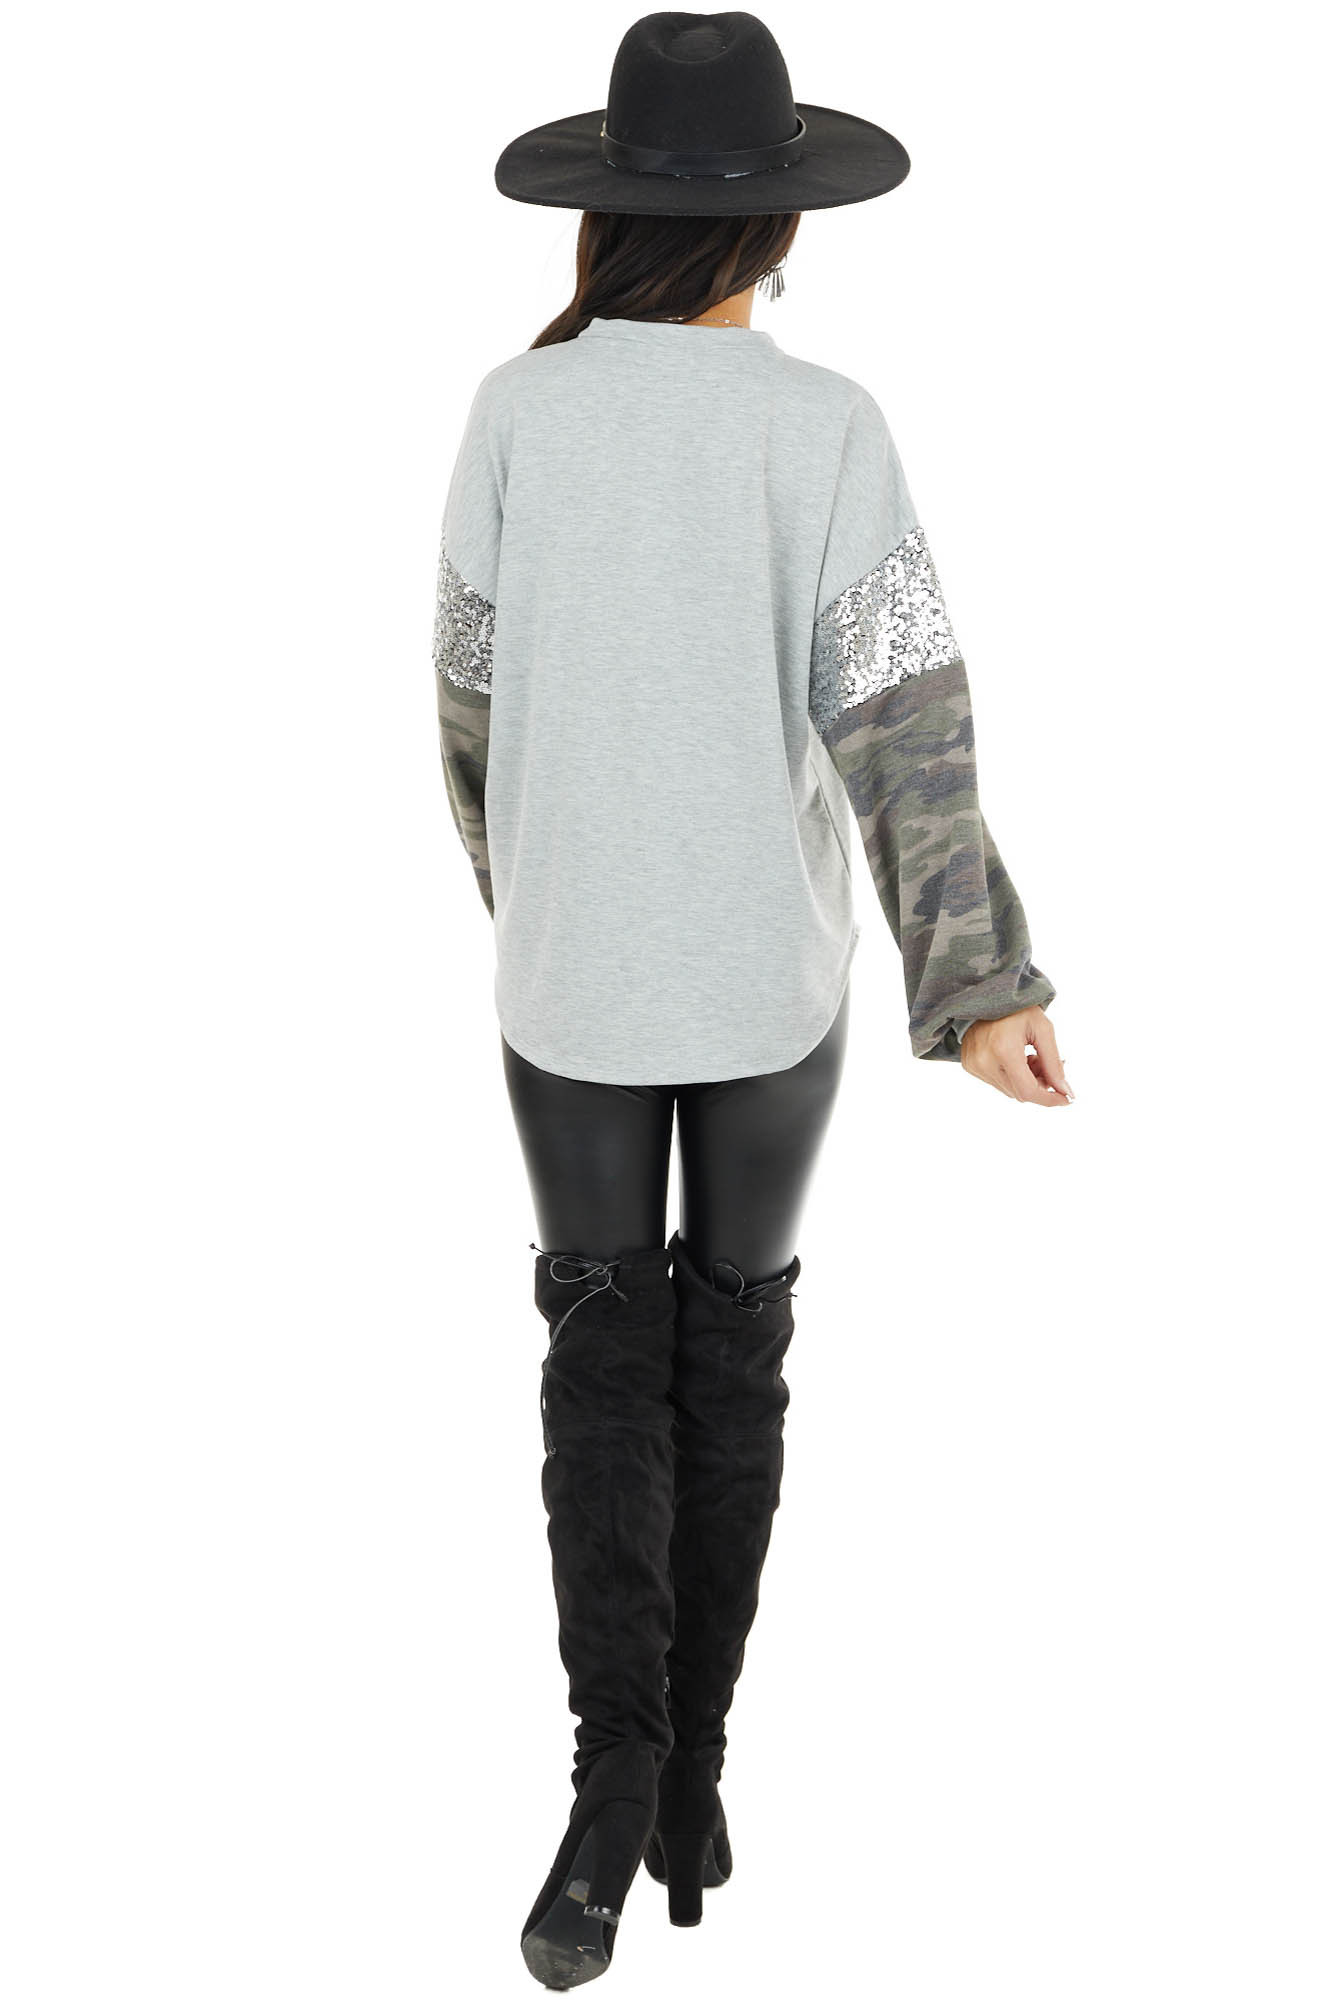 Heather Grey Knit Top with Camo Print and Sequin Long Sleeve